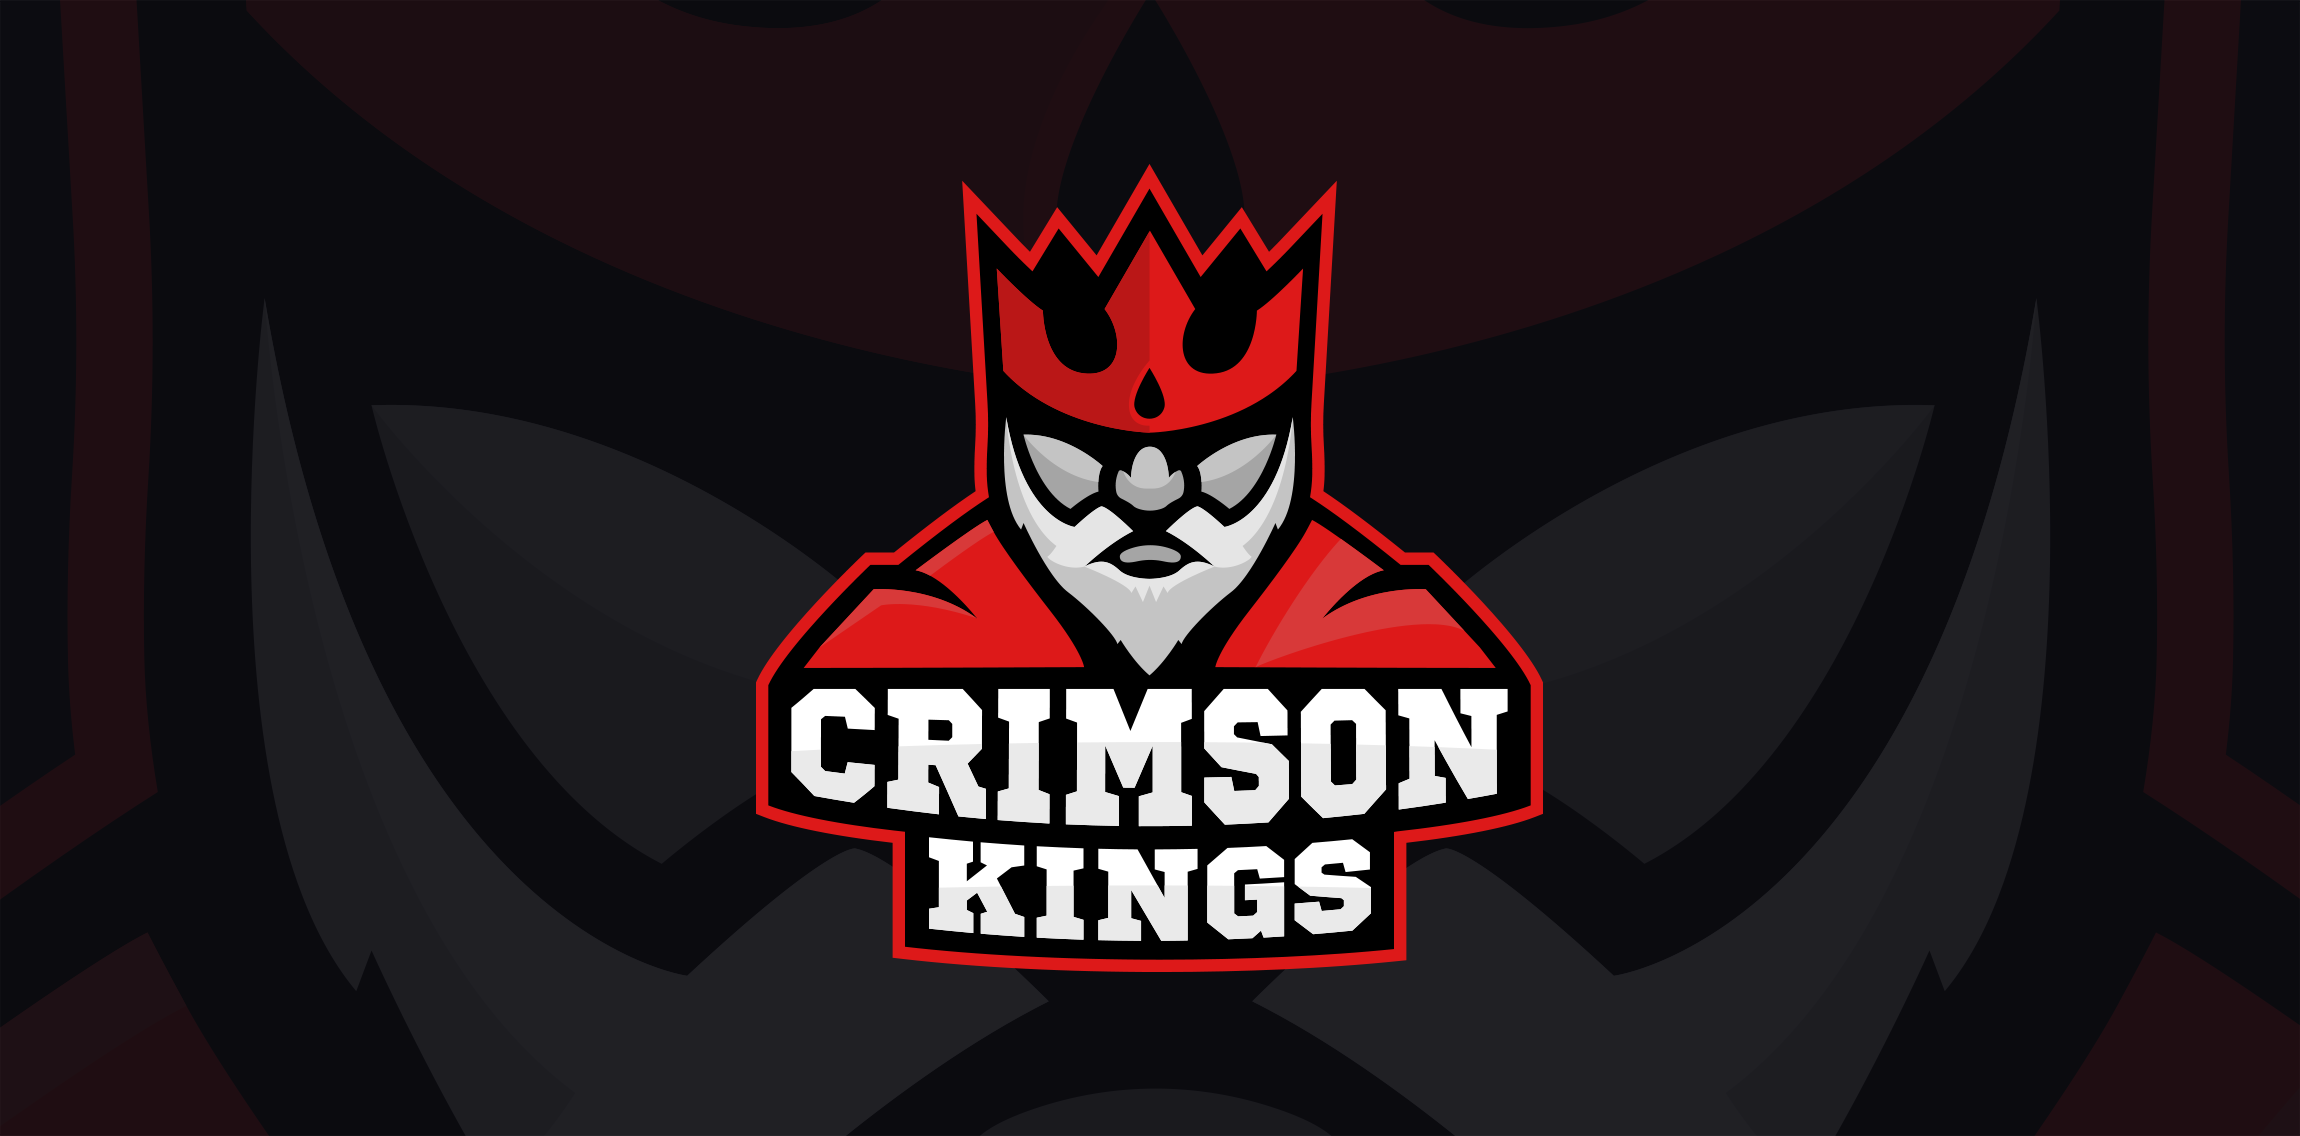 Crimson Kings